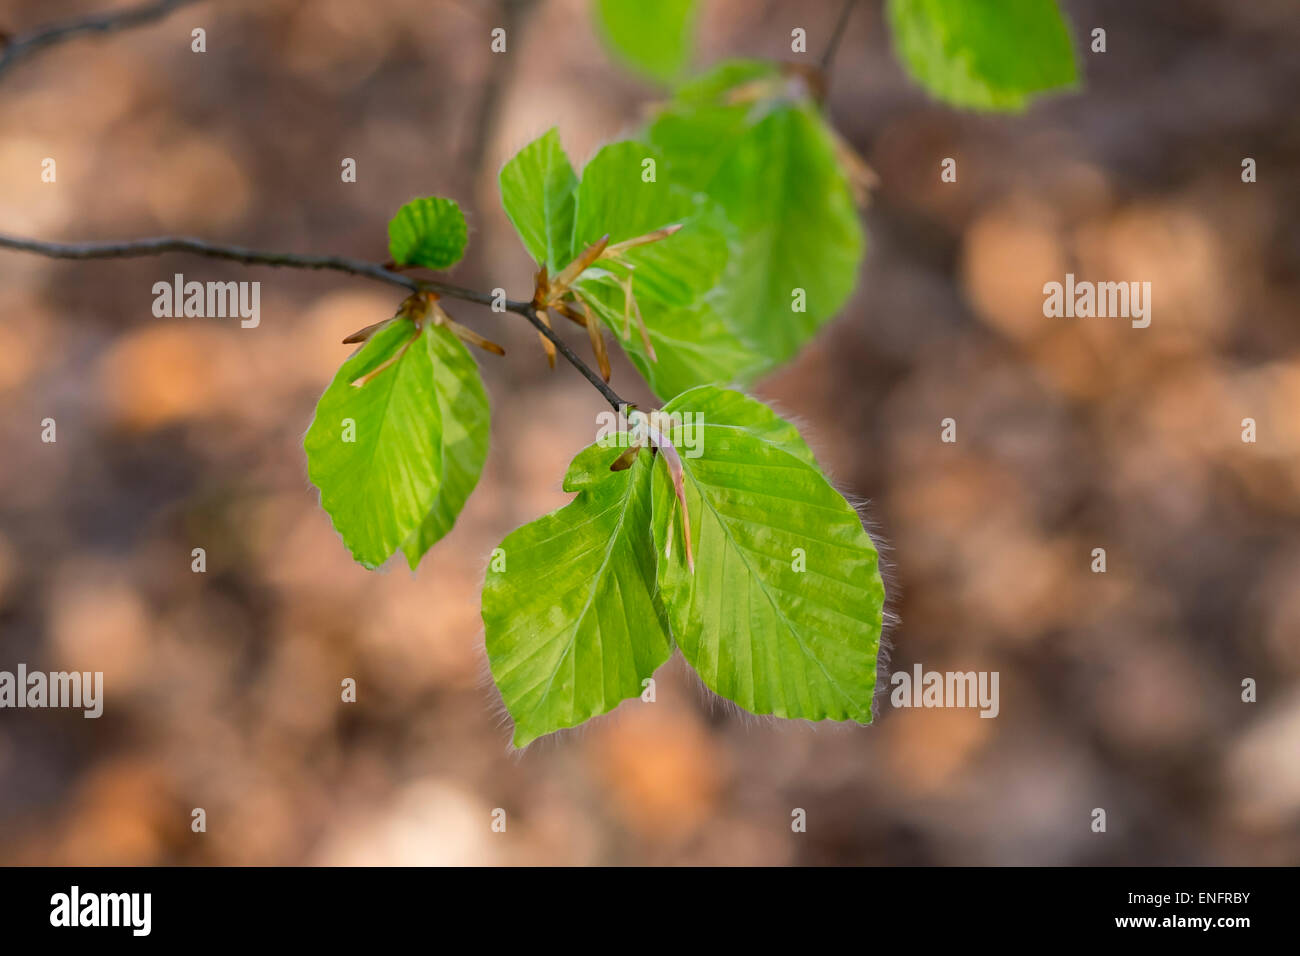 Young leaves of a beech tree (Fagus sylvatica), Burgenland, Austria - Stock Image